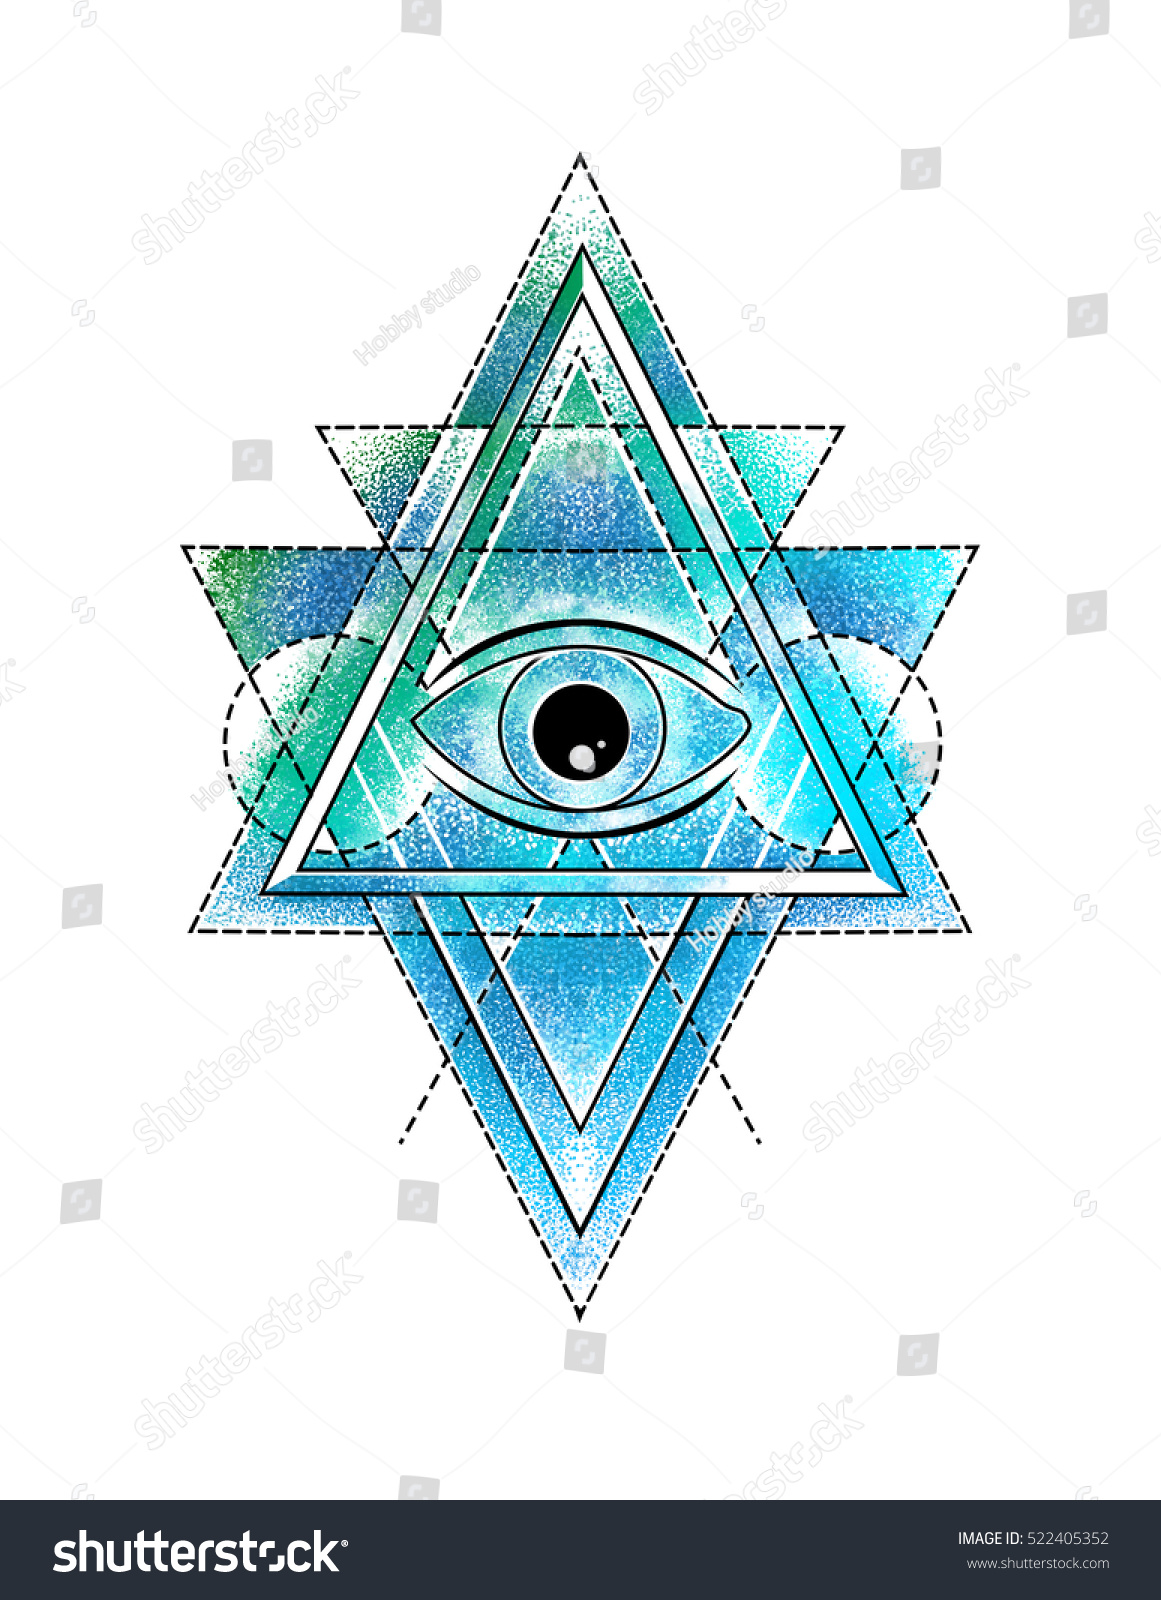 All seeing eye delta triangle symbol stock illustration 522405352 all seeing eye in delta triangle symbol tattoo with a dotted lineillustration biocorpaavc Choice Image